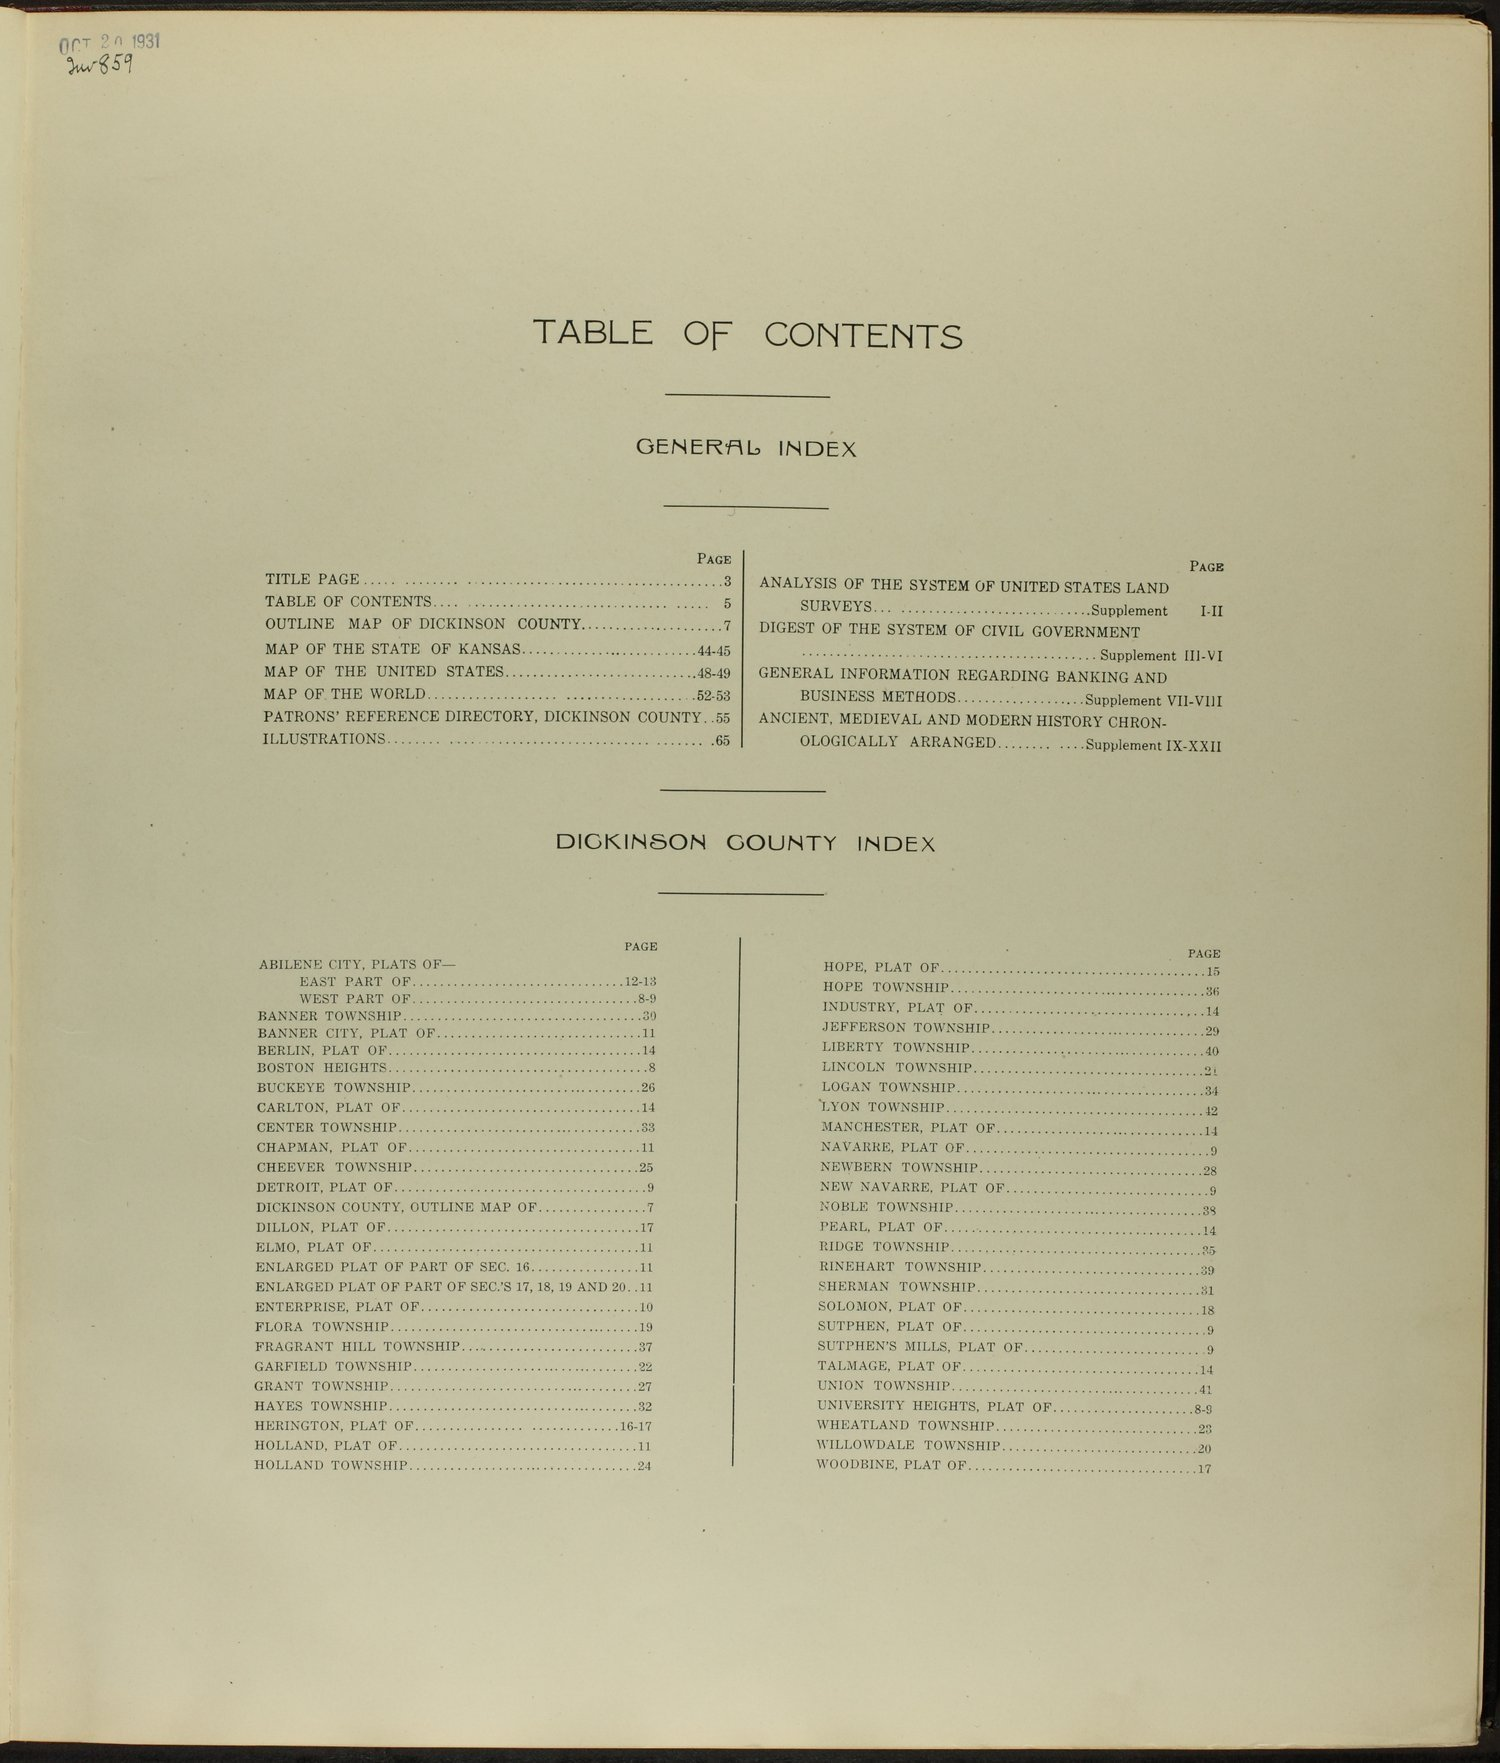 Standard atlas of Dickinson County, Kansas - Table of Contents